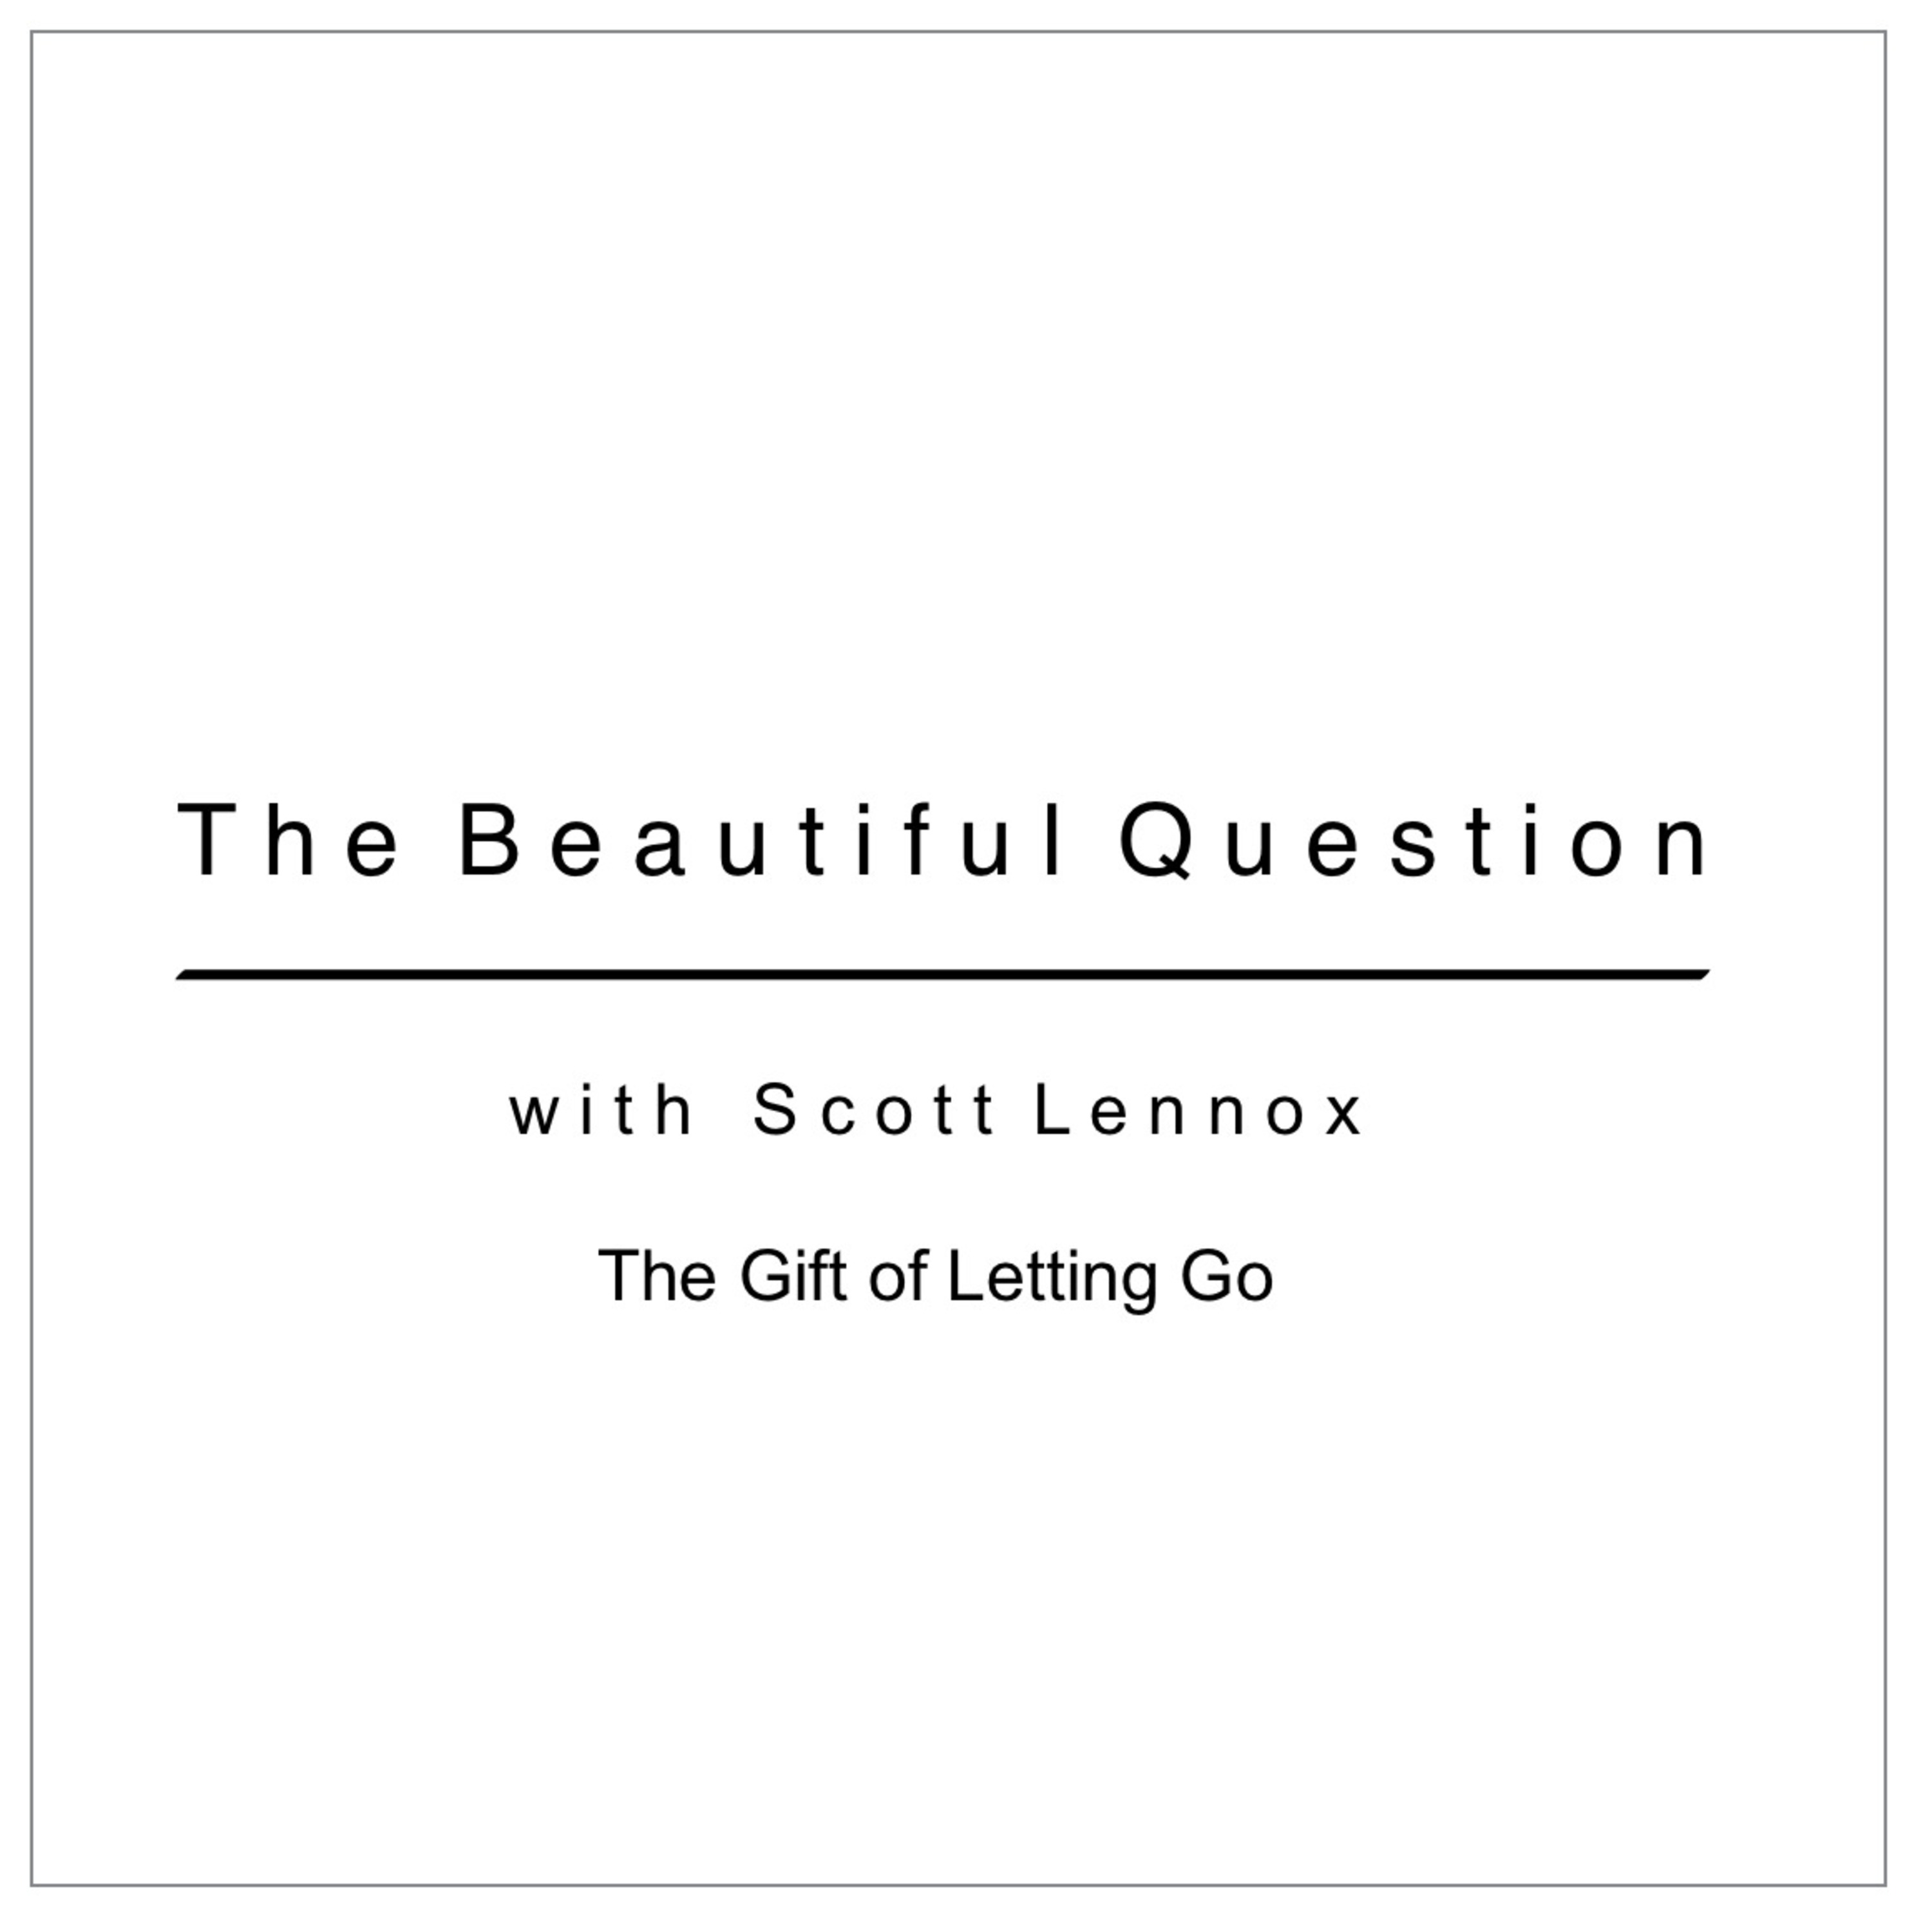 The Gift of Letting Go